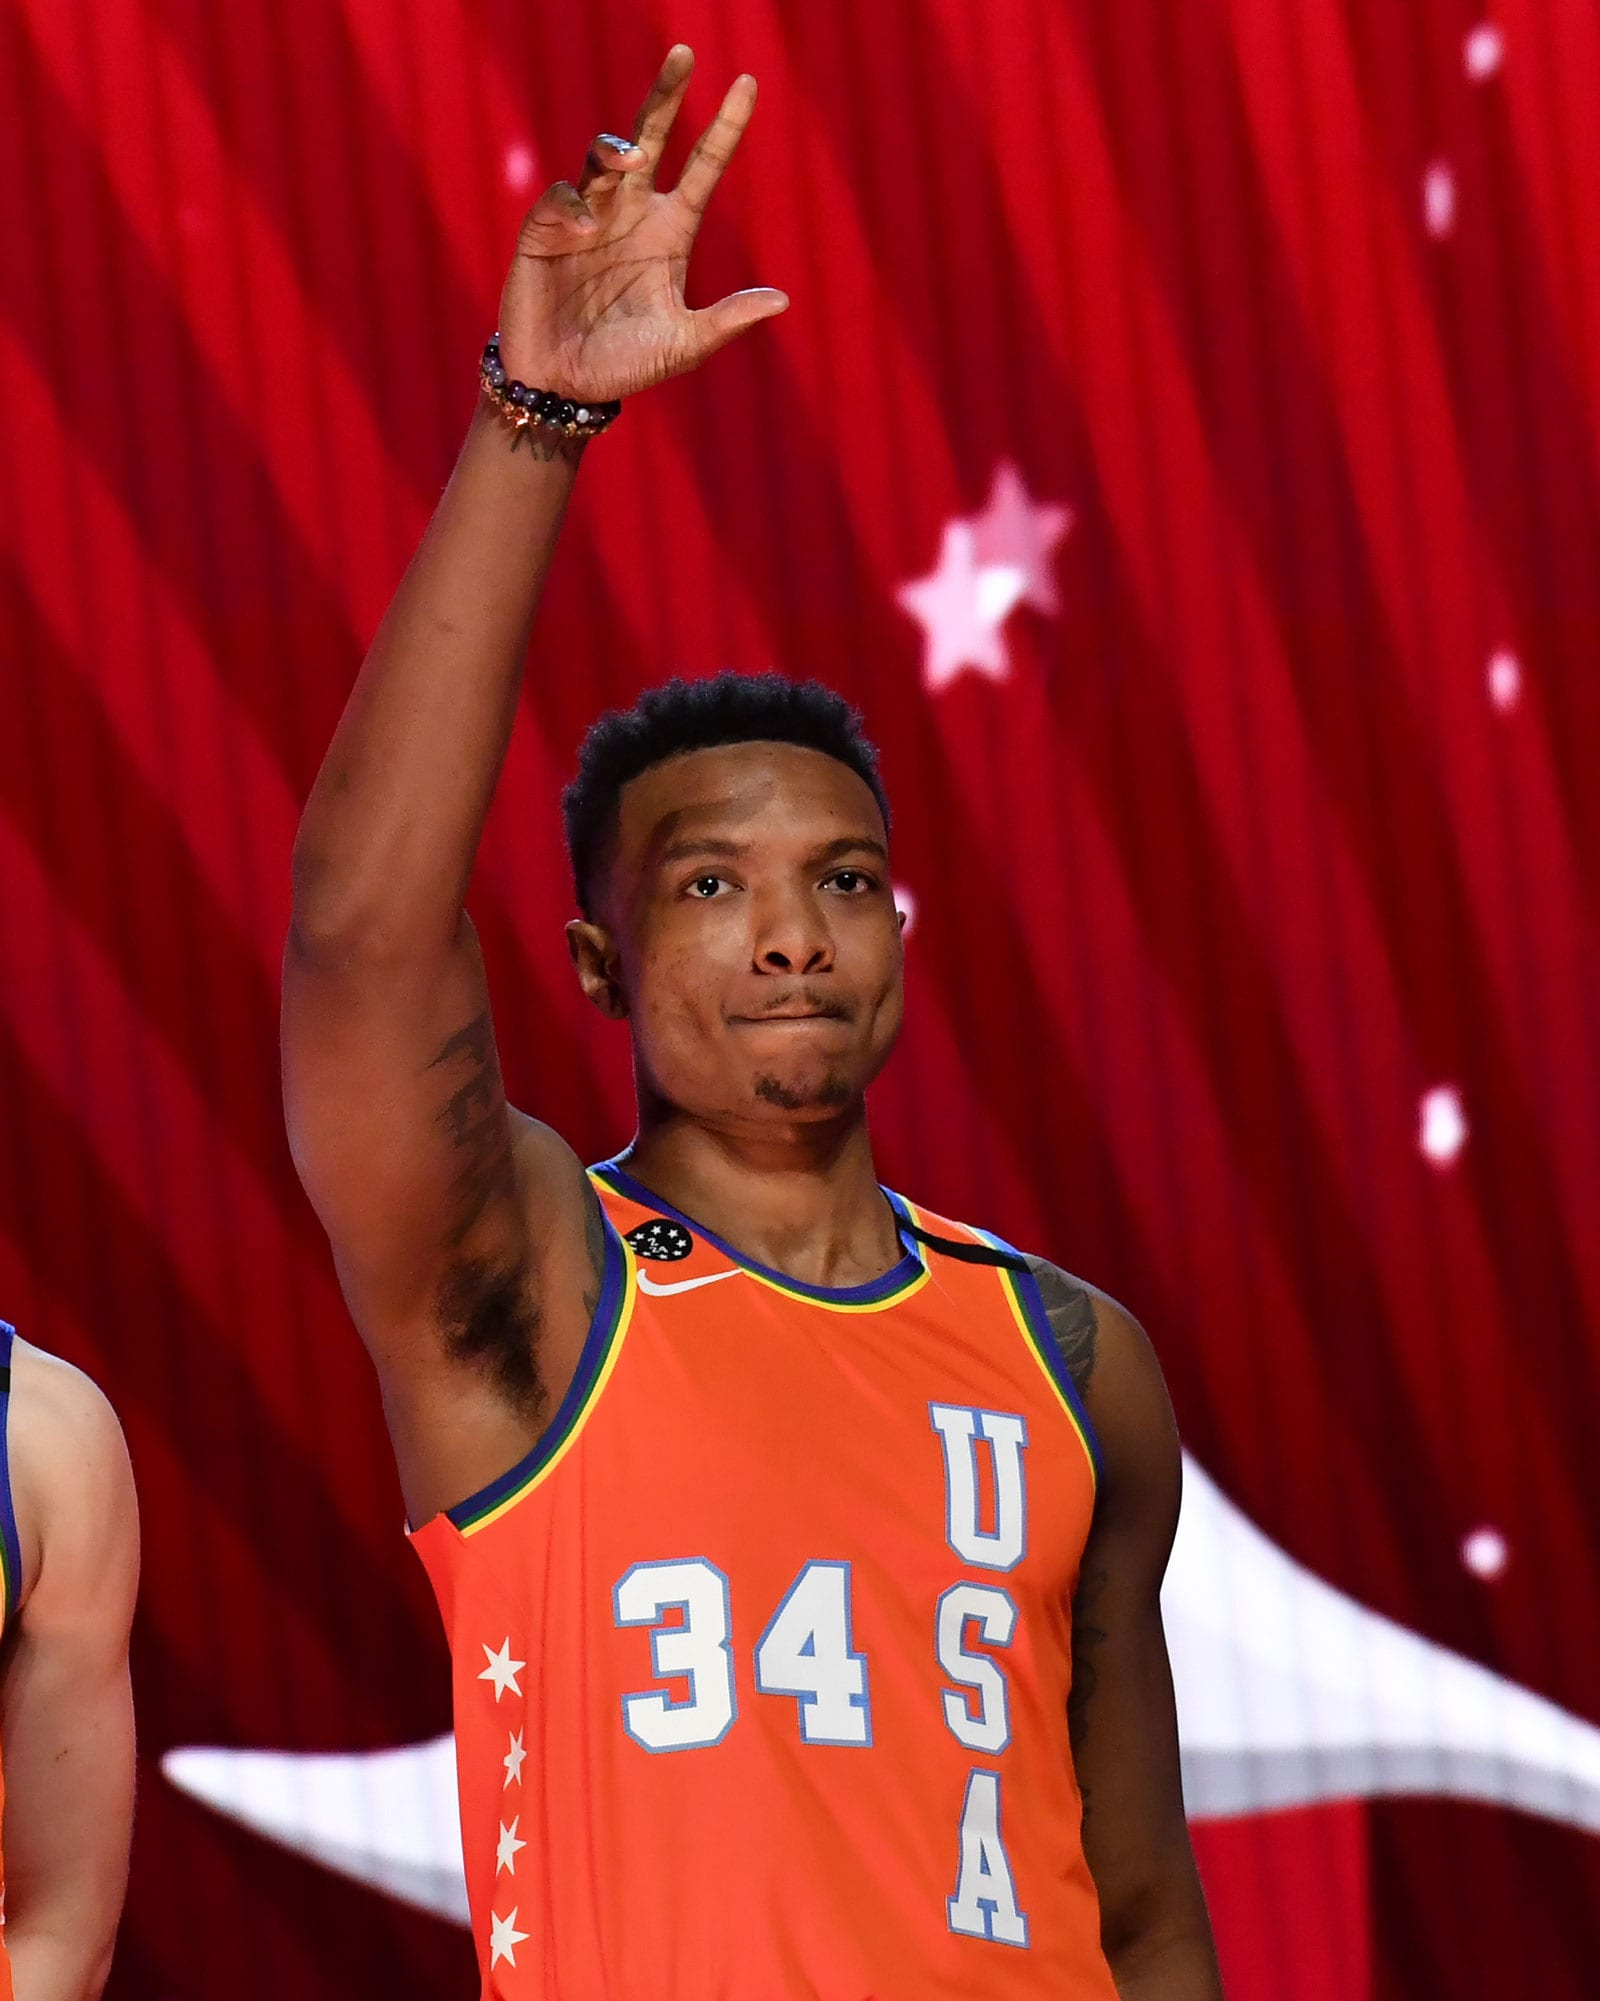 Despite not playing in the Rising Stars game, Wendell Carter Jr. got a warm ovation from the Chicago crowd.